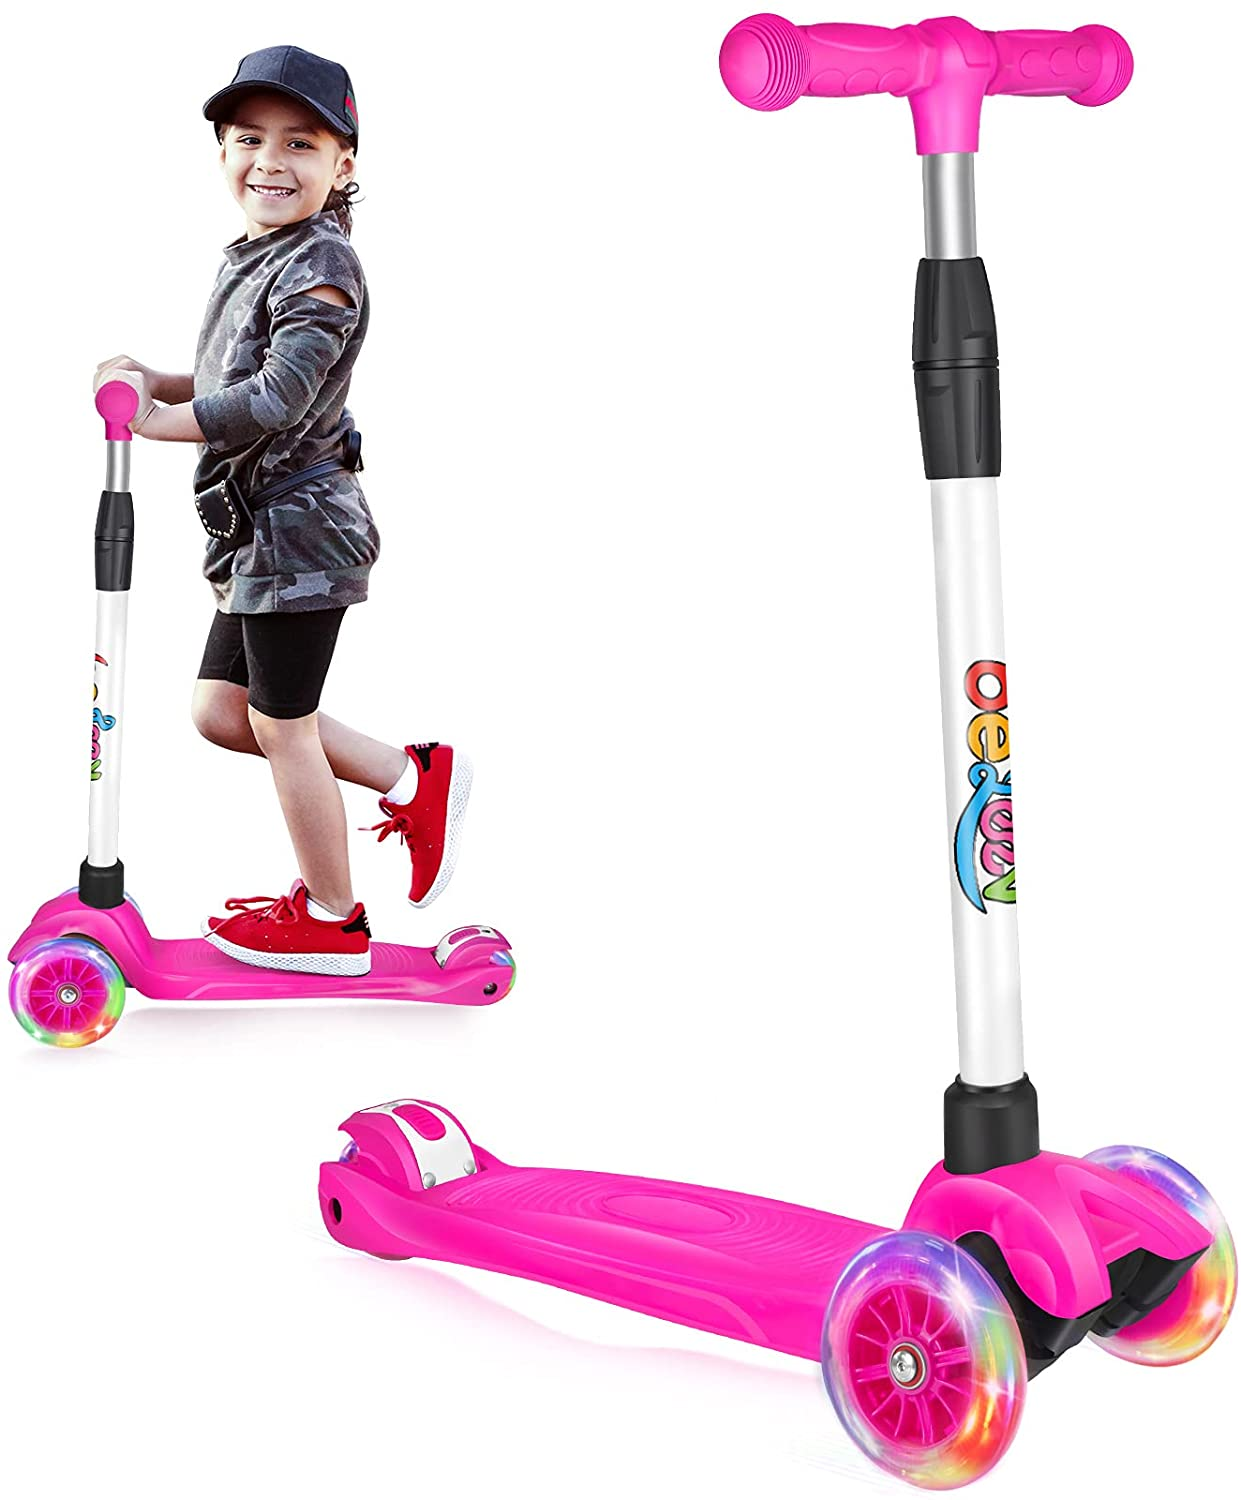 Beleev Scooters for Kids 3 Wheel Kick Scooter for Toddlers Girls & Boys, 4 Adjustable Height, Lean to Steer, Extra-Wide Deck, Light Up Wheels for Children from 3 to 14 Years Old